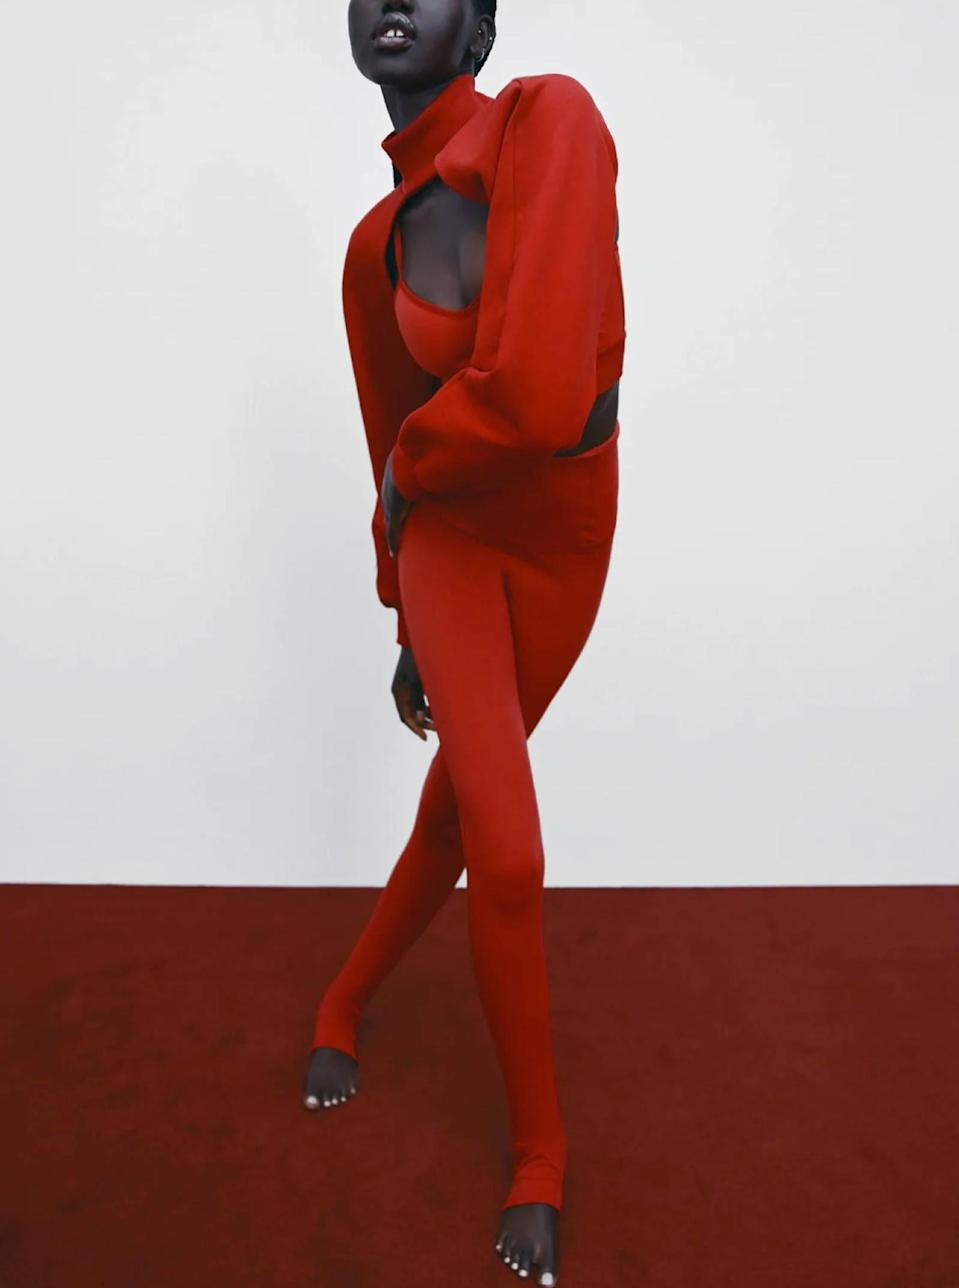 """Forget about """"keeping things subtle"""". This fiery red coverup is bound to turn <em>all</em> the heads on your next brunch date. $26, Zara. <a href=""""https://www.zara.com/us/en/mock-neck-arm-warmers-p05644304.html?"""" rel=""""nofollow noopener"""" target=""""_blank"""" data-ylk=""""slk:Get it now!"""" class=""""link rapid-noclick-resp"""">Get it now!</a>"""